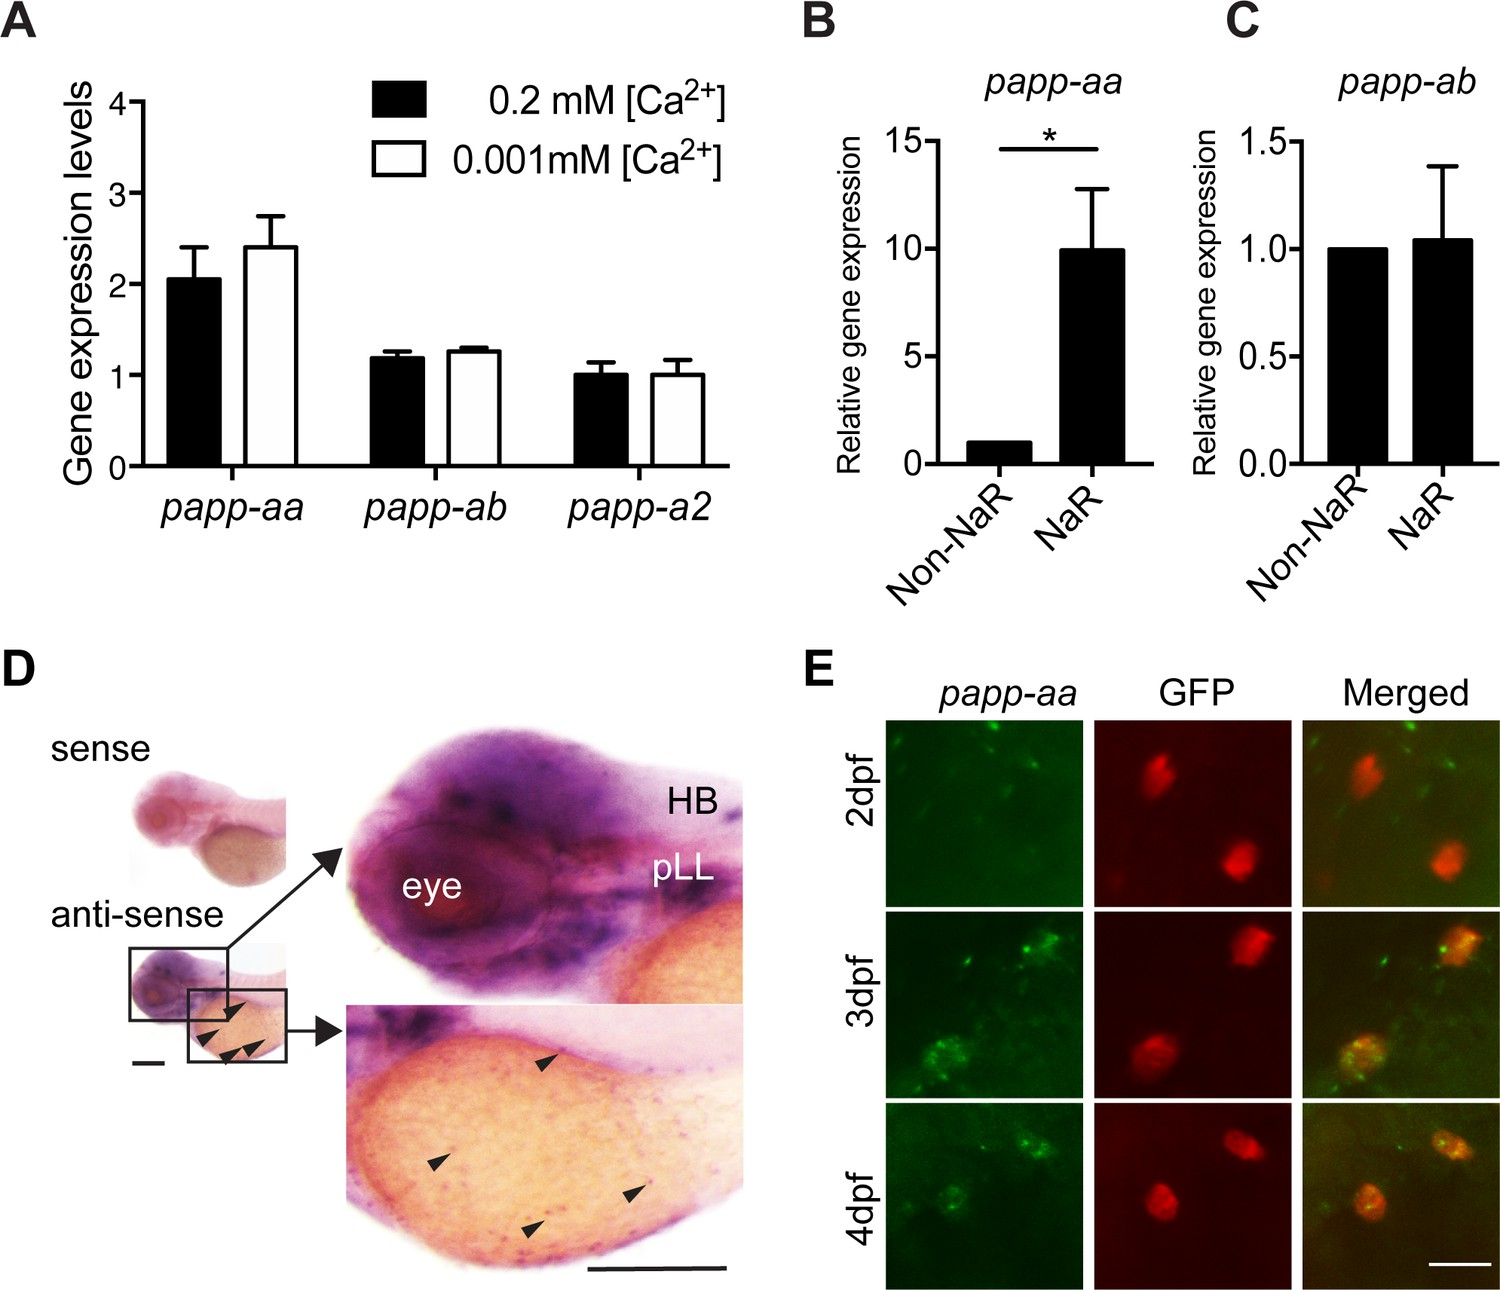 The metalloproteinase Papp-aa controls epithelial cell quiescence ...